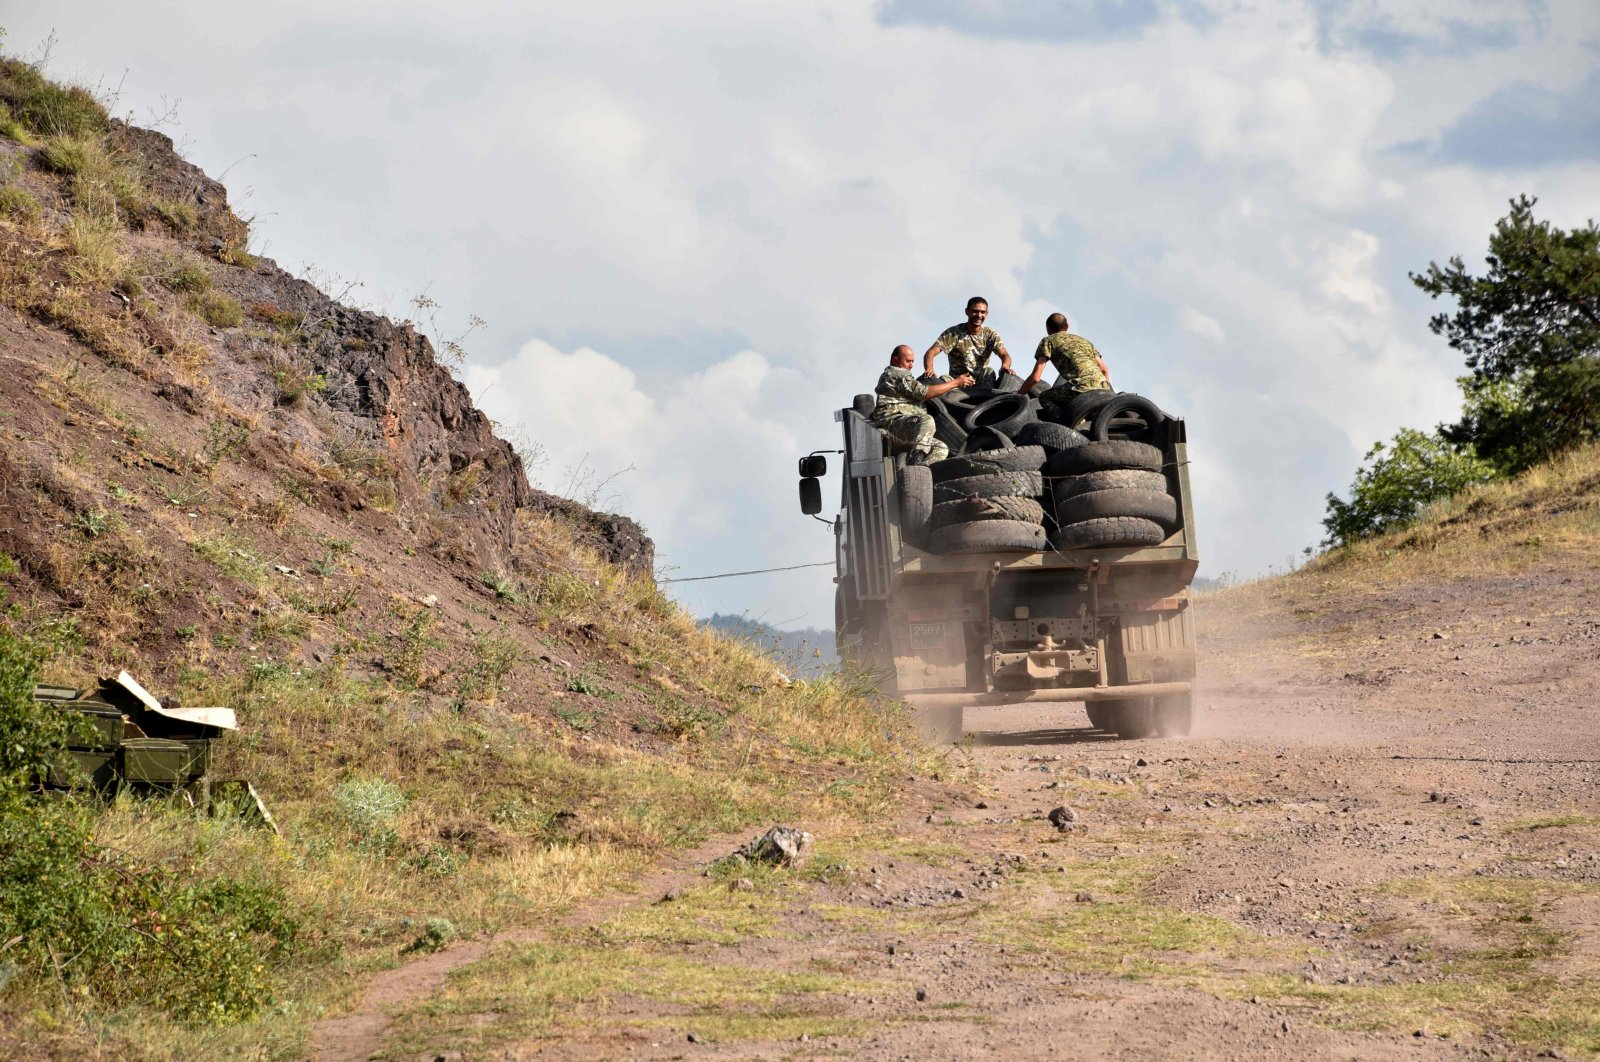 Armenian servicemen transport used tires in the back of a truck to fortify their positions on the Armenian-Azerbaijani border near the village of Movses, Armenia, July 15, 2020. (AFP Photo)